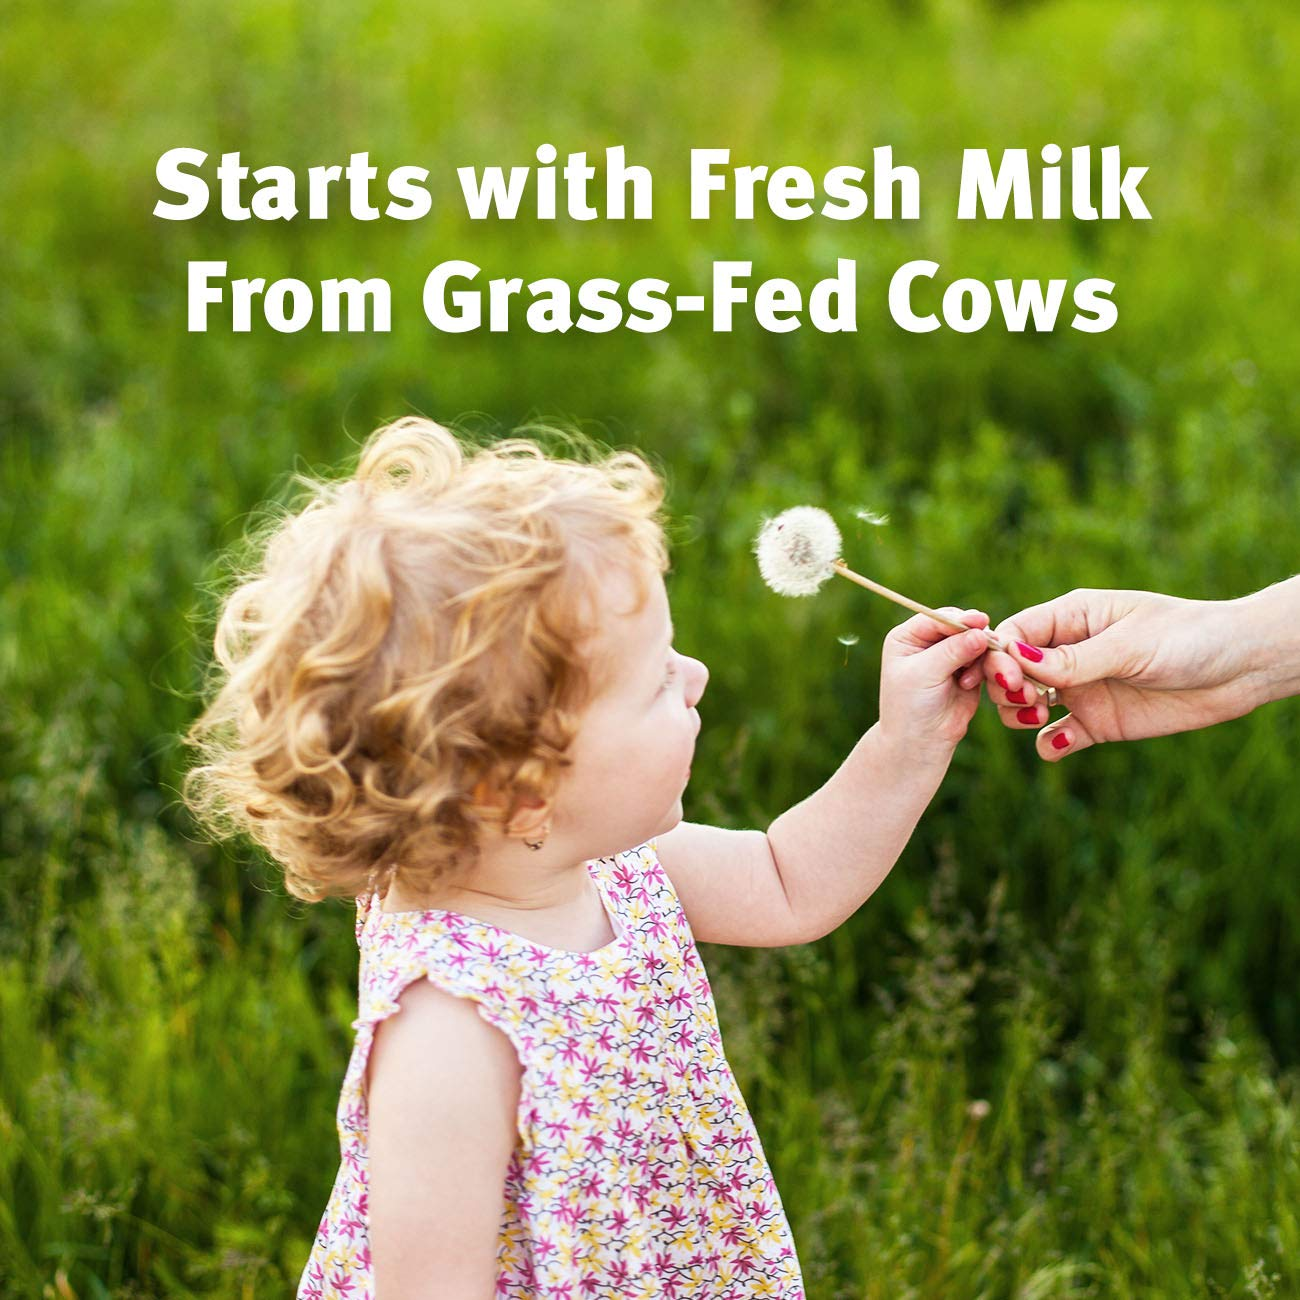 Pure Bliss by Similac Toddler Drink with Probiotics, Starts with Fresh Milk from Grass-Fed Cows, Non-GMO Toddler Formula, 31.8 ounces by Similac (Image #4)